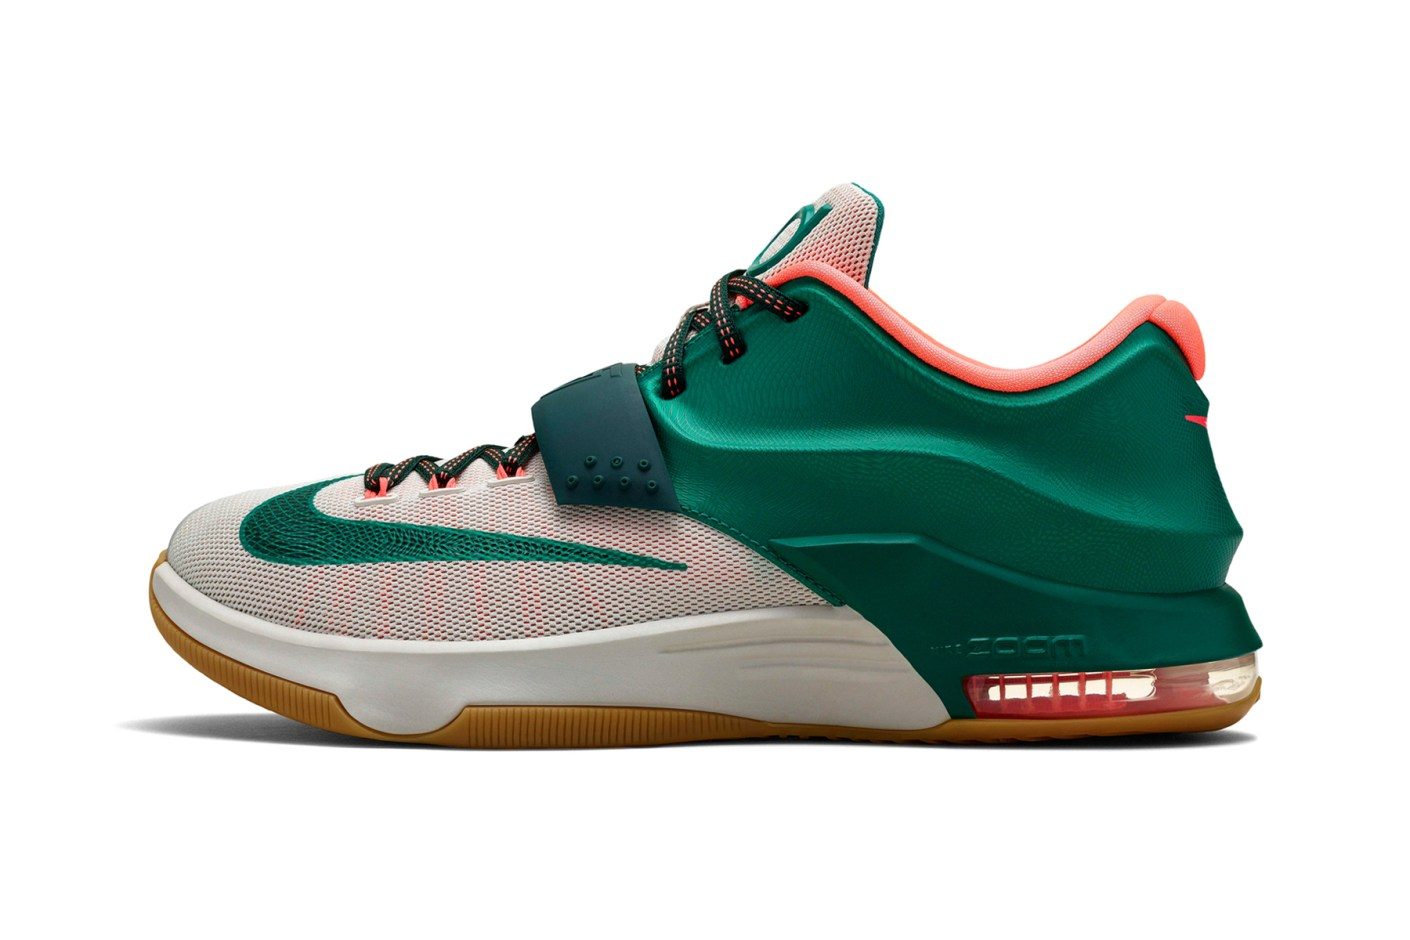 nike-kd7-uprising-05 Images - Frompo